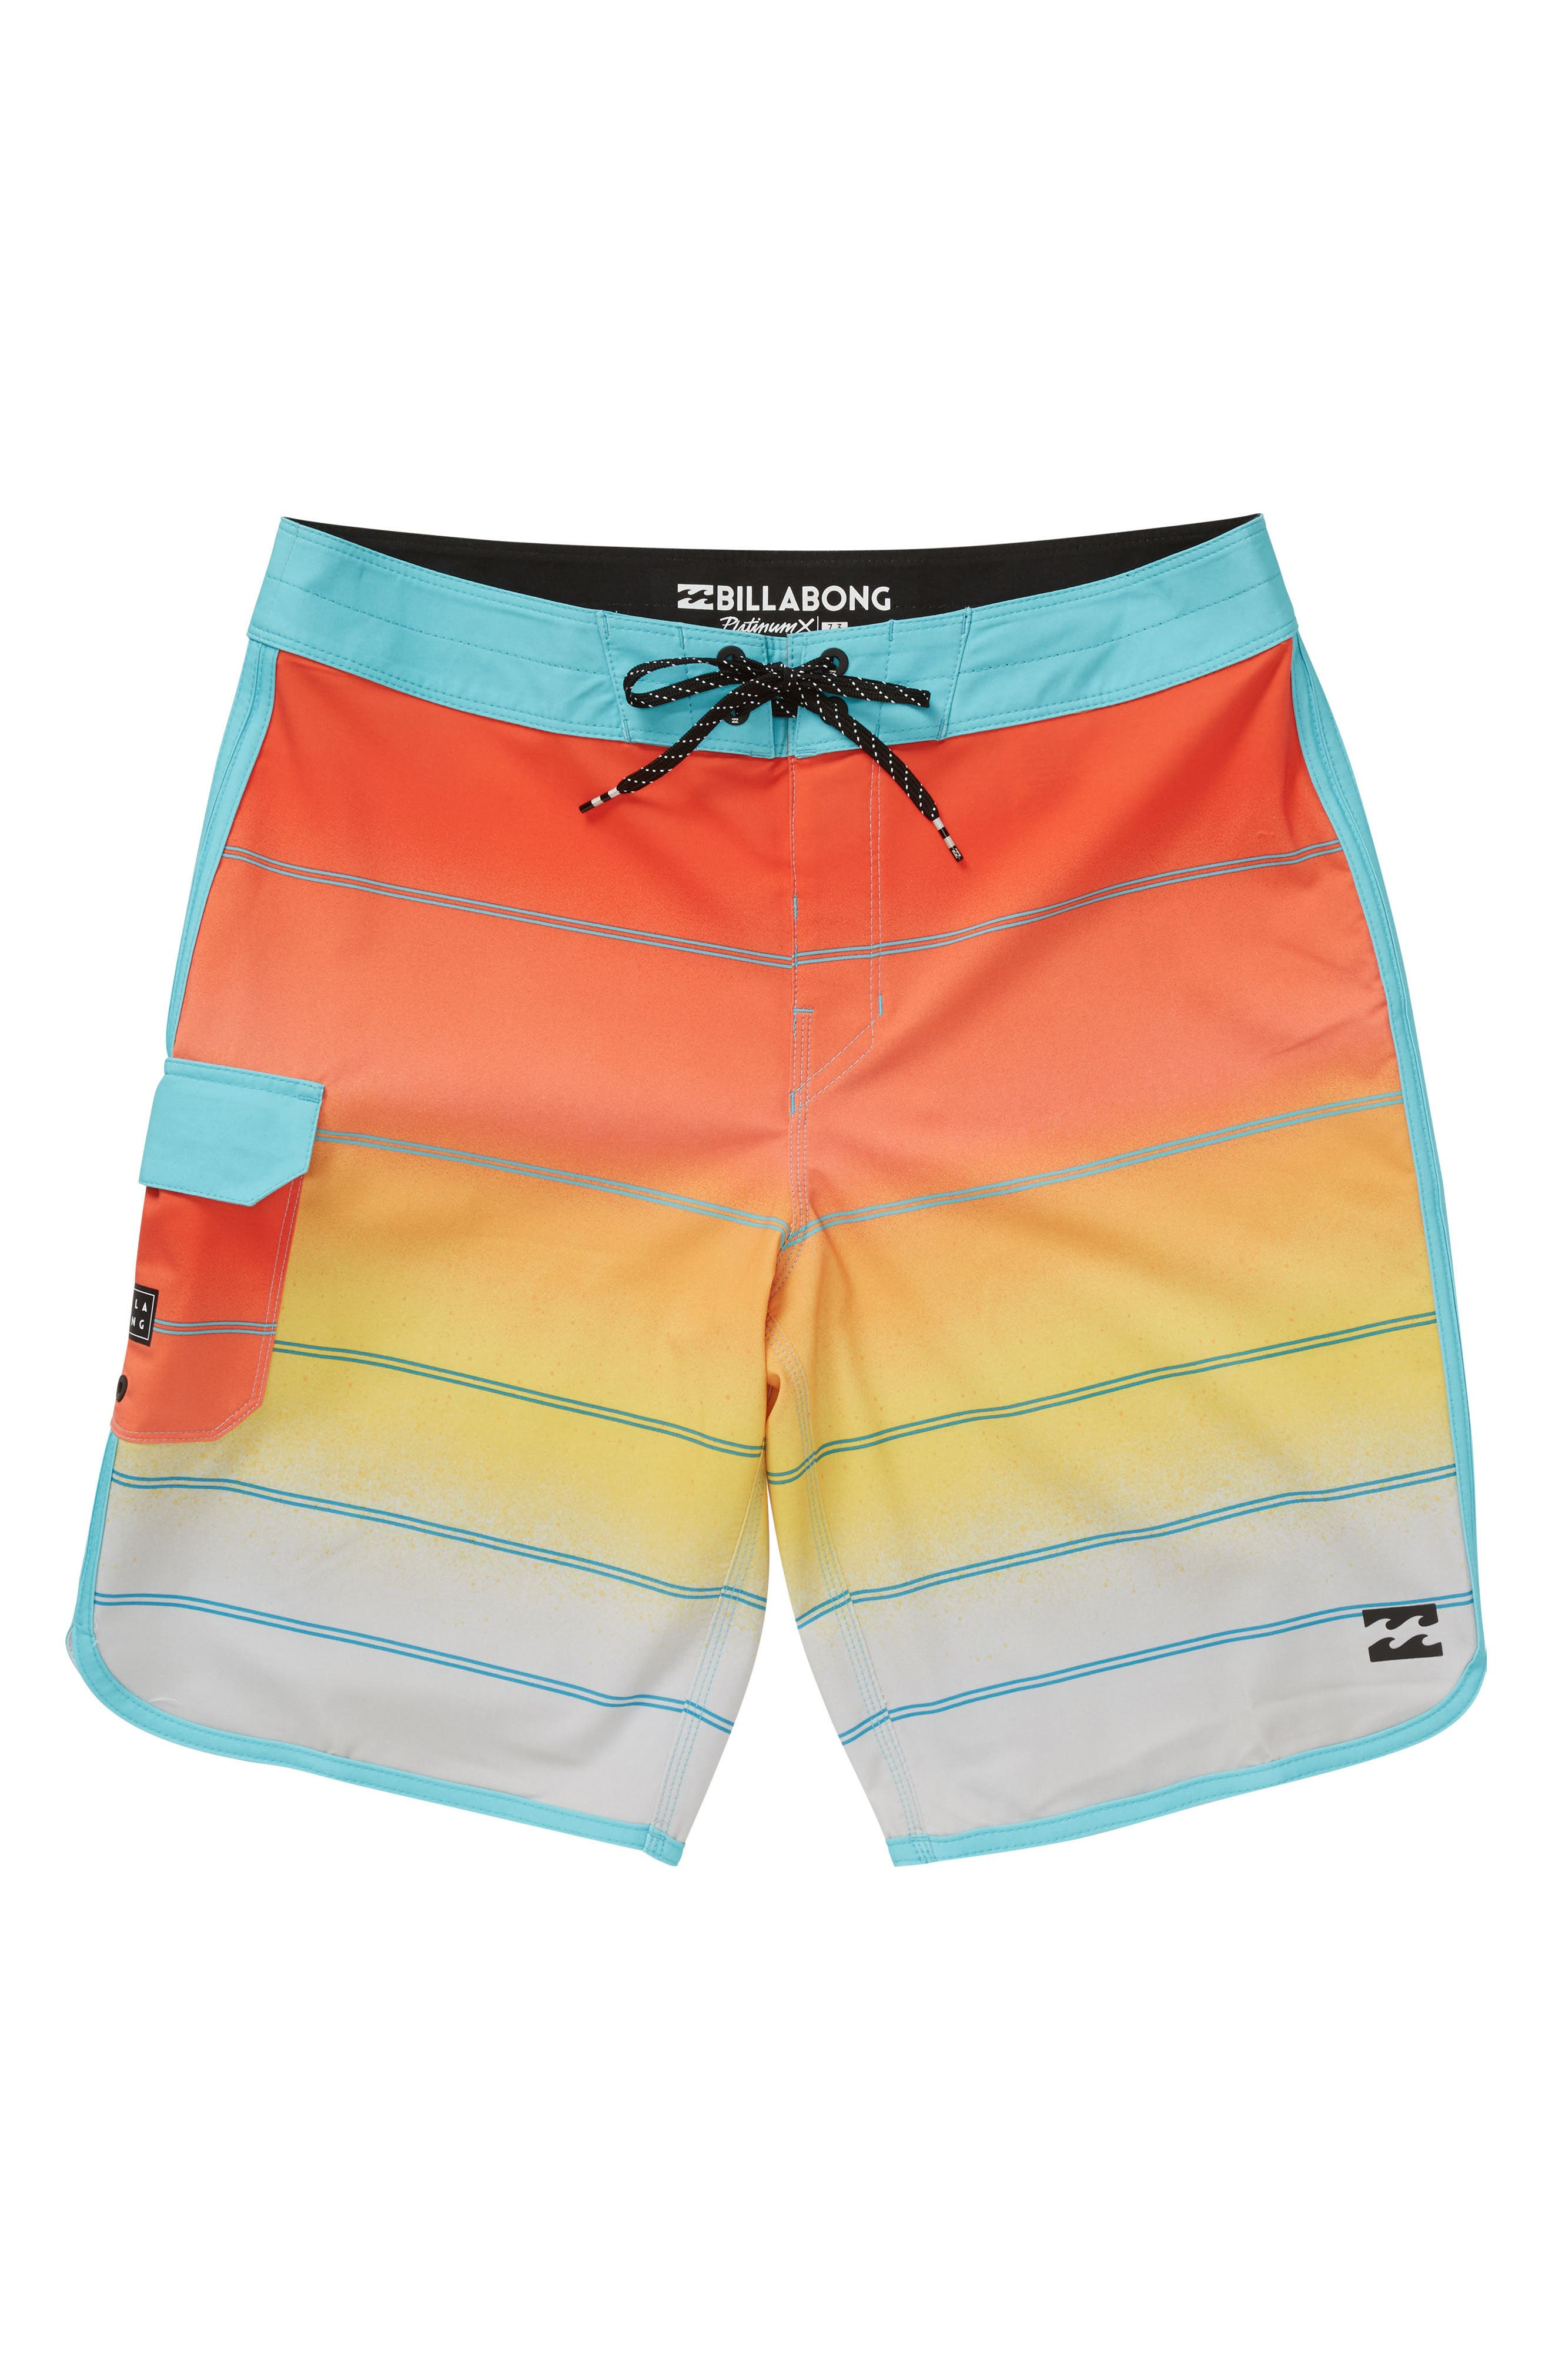 Billabong 73 X Stripe Board Shorts (Little Boys)